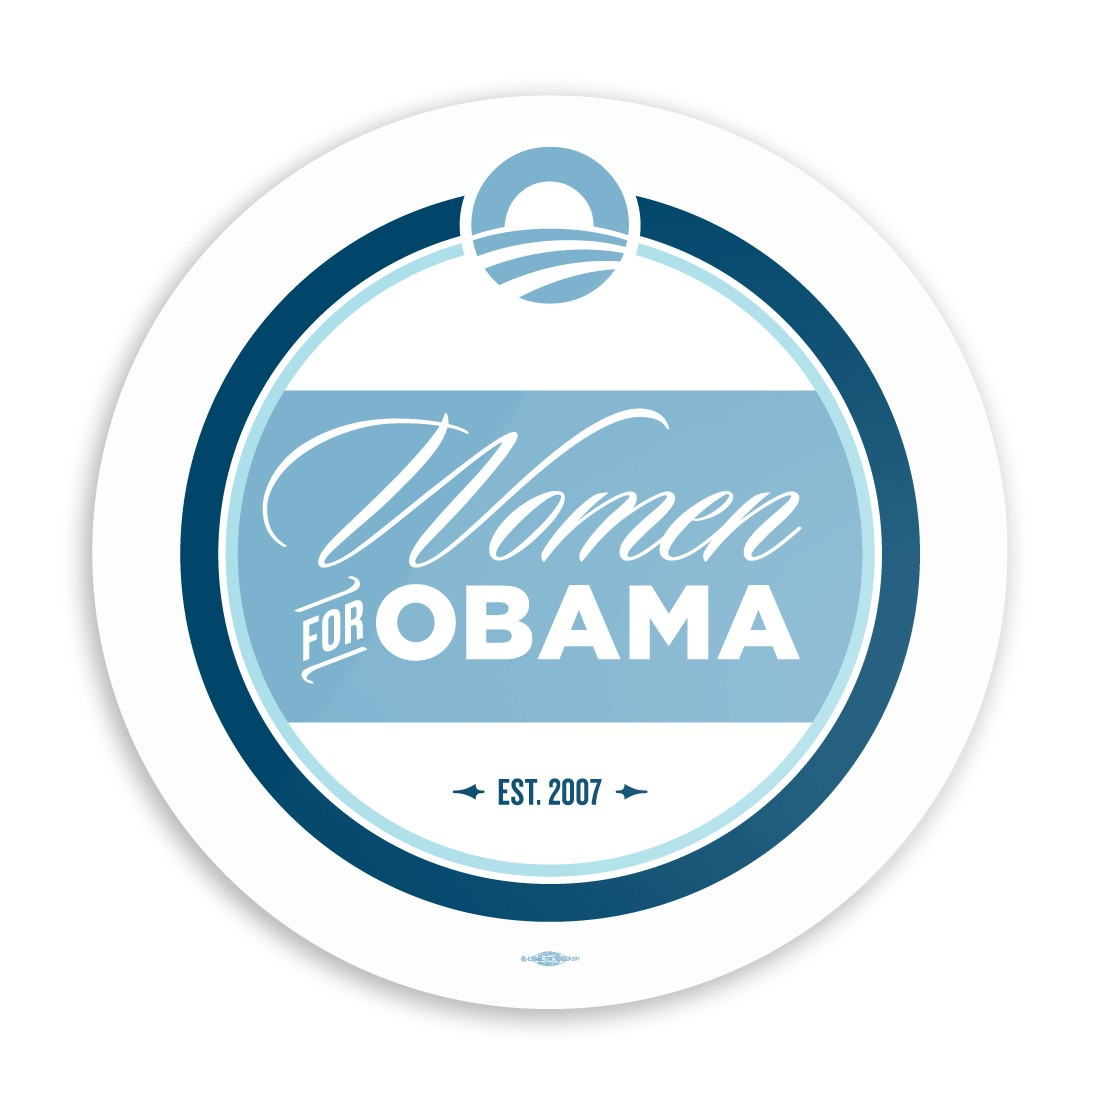 Women for Obama event in Ypsilanti THIS THURSDAY featuring Obama political director Katherine Archuleta